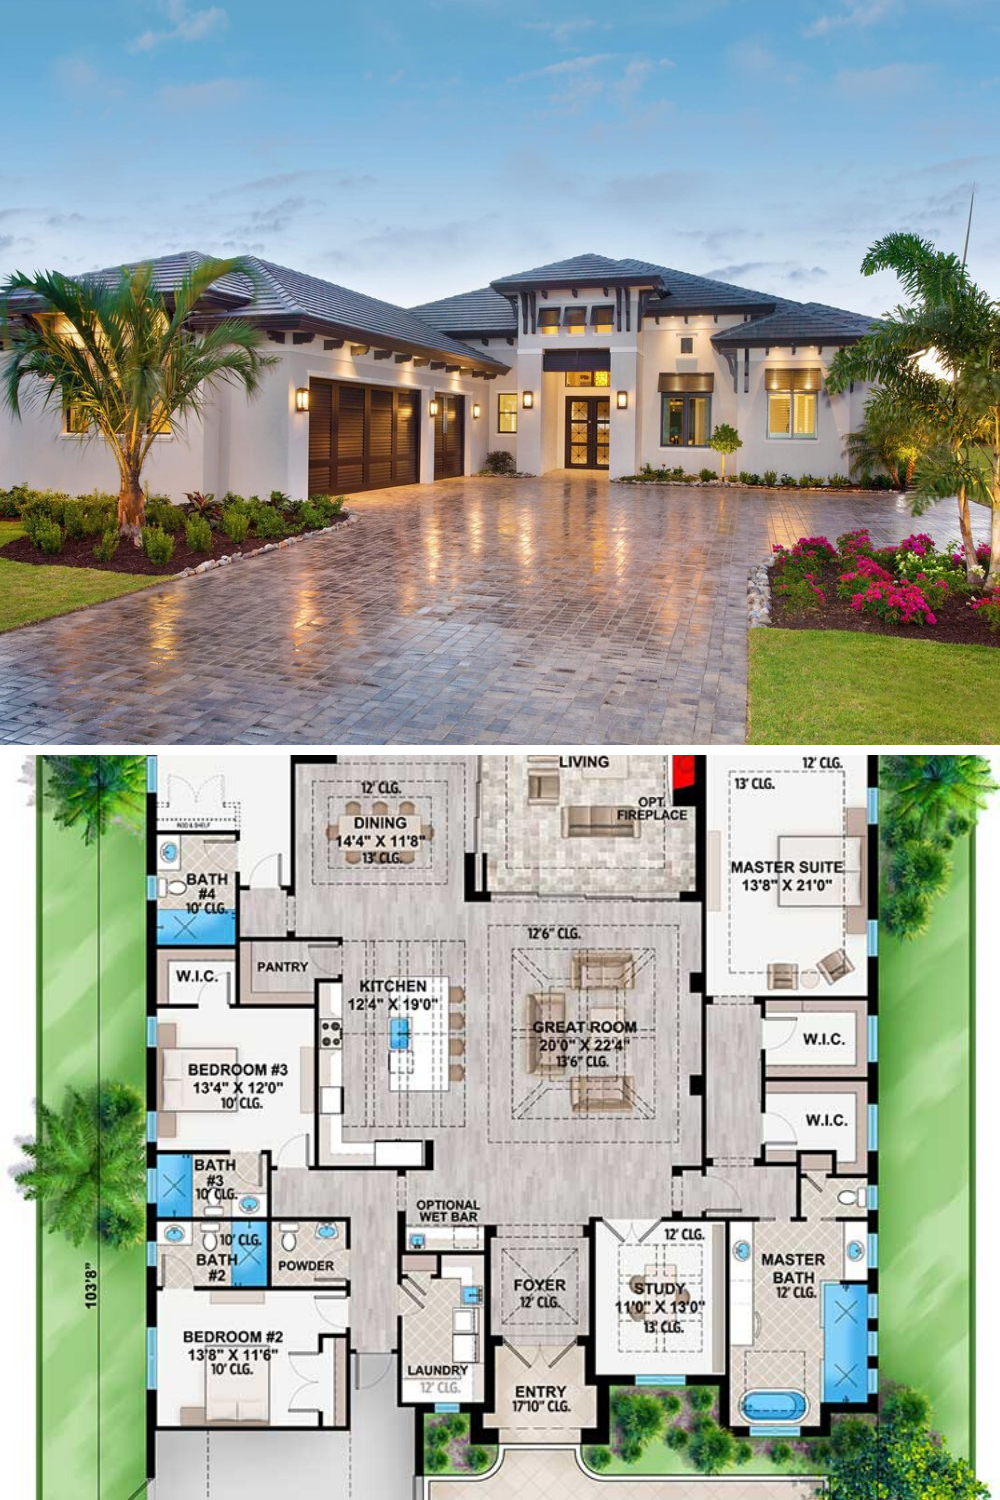 11+ One story mansions ideas